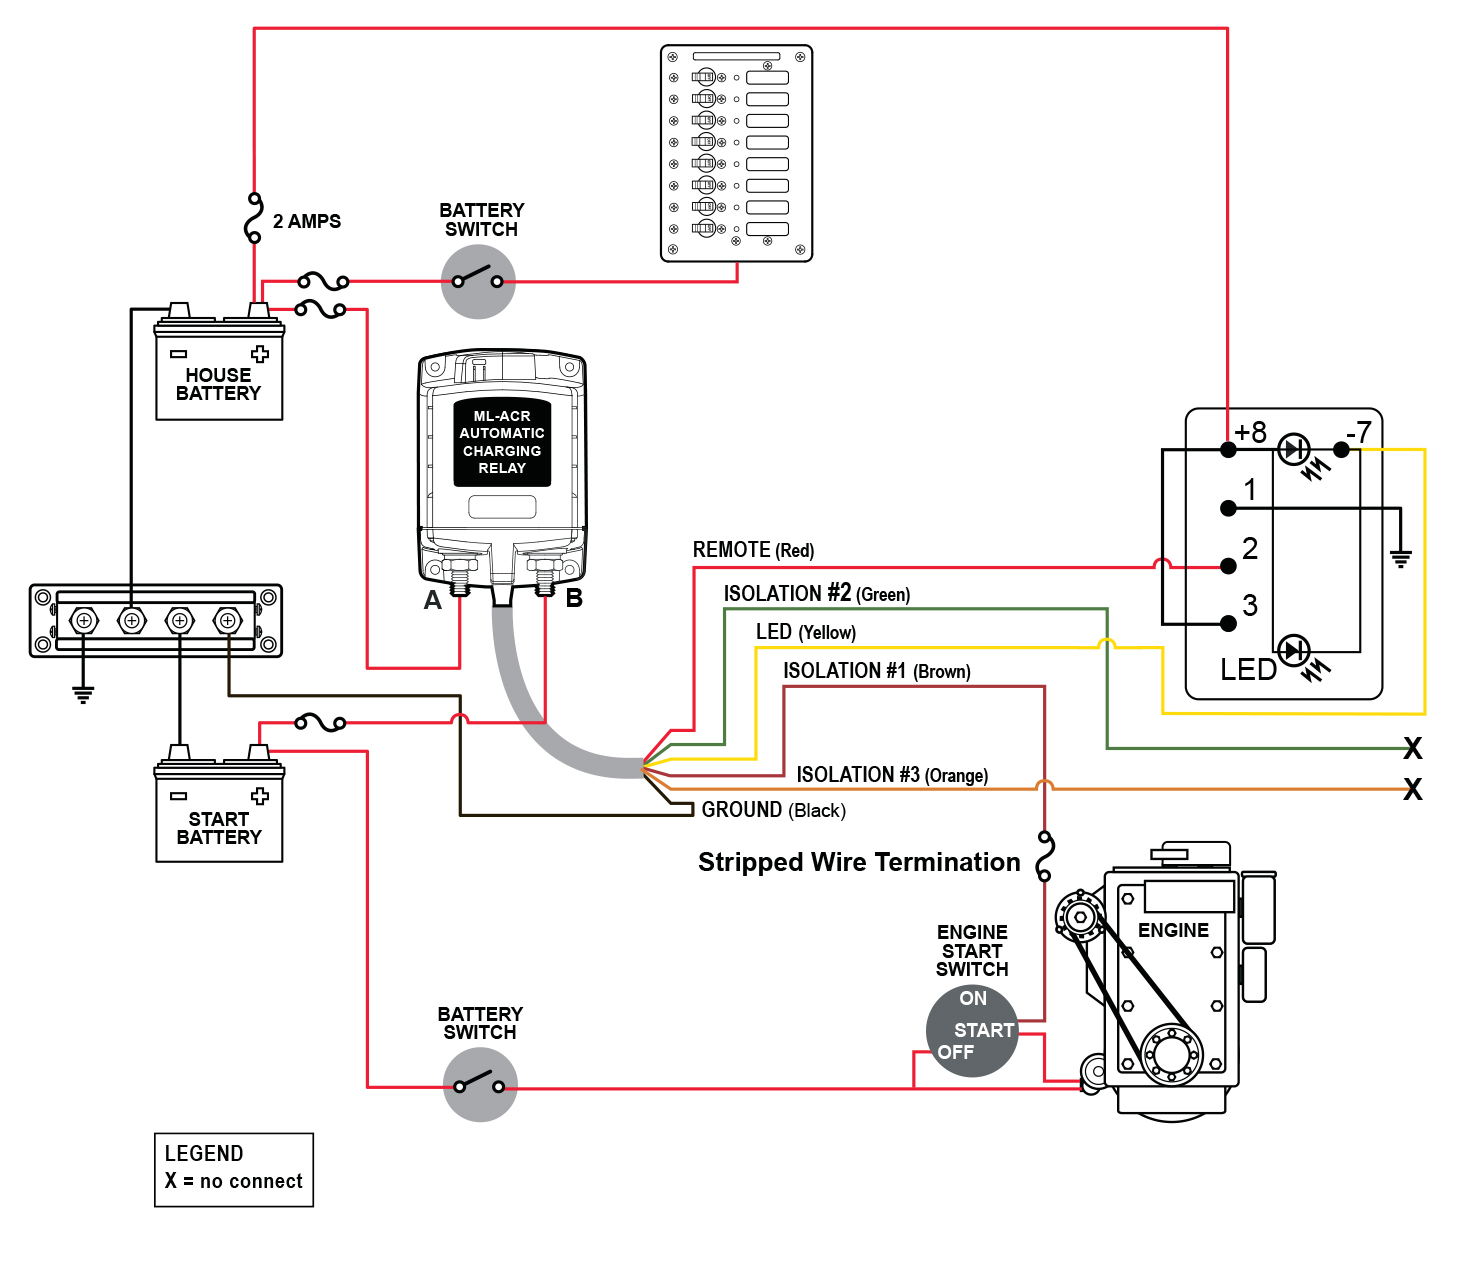 medium resolution of blue sea ml acr automatic charging relay wiring diagram